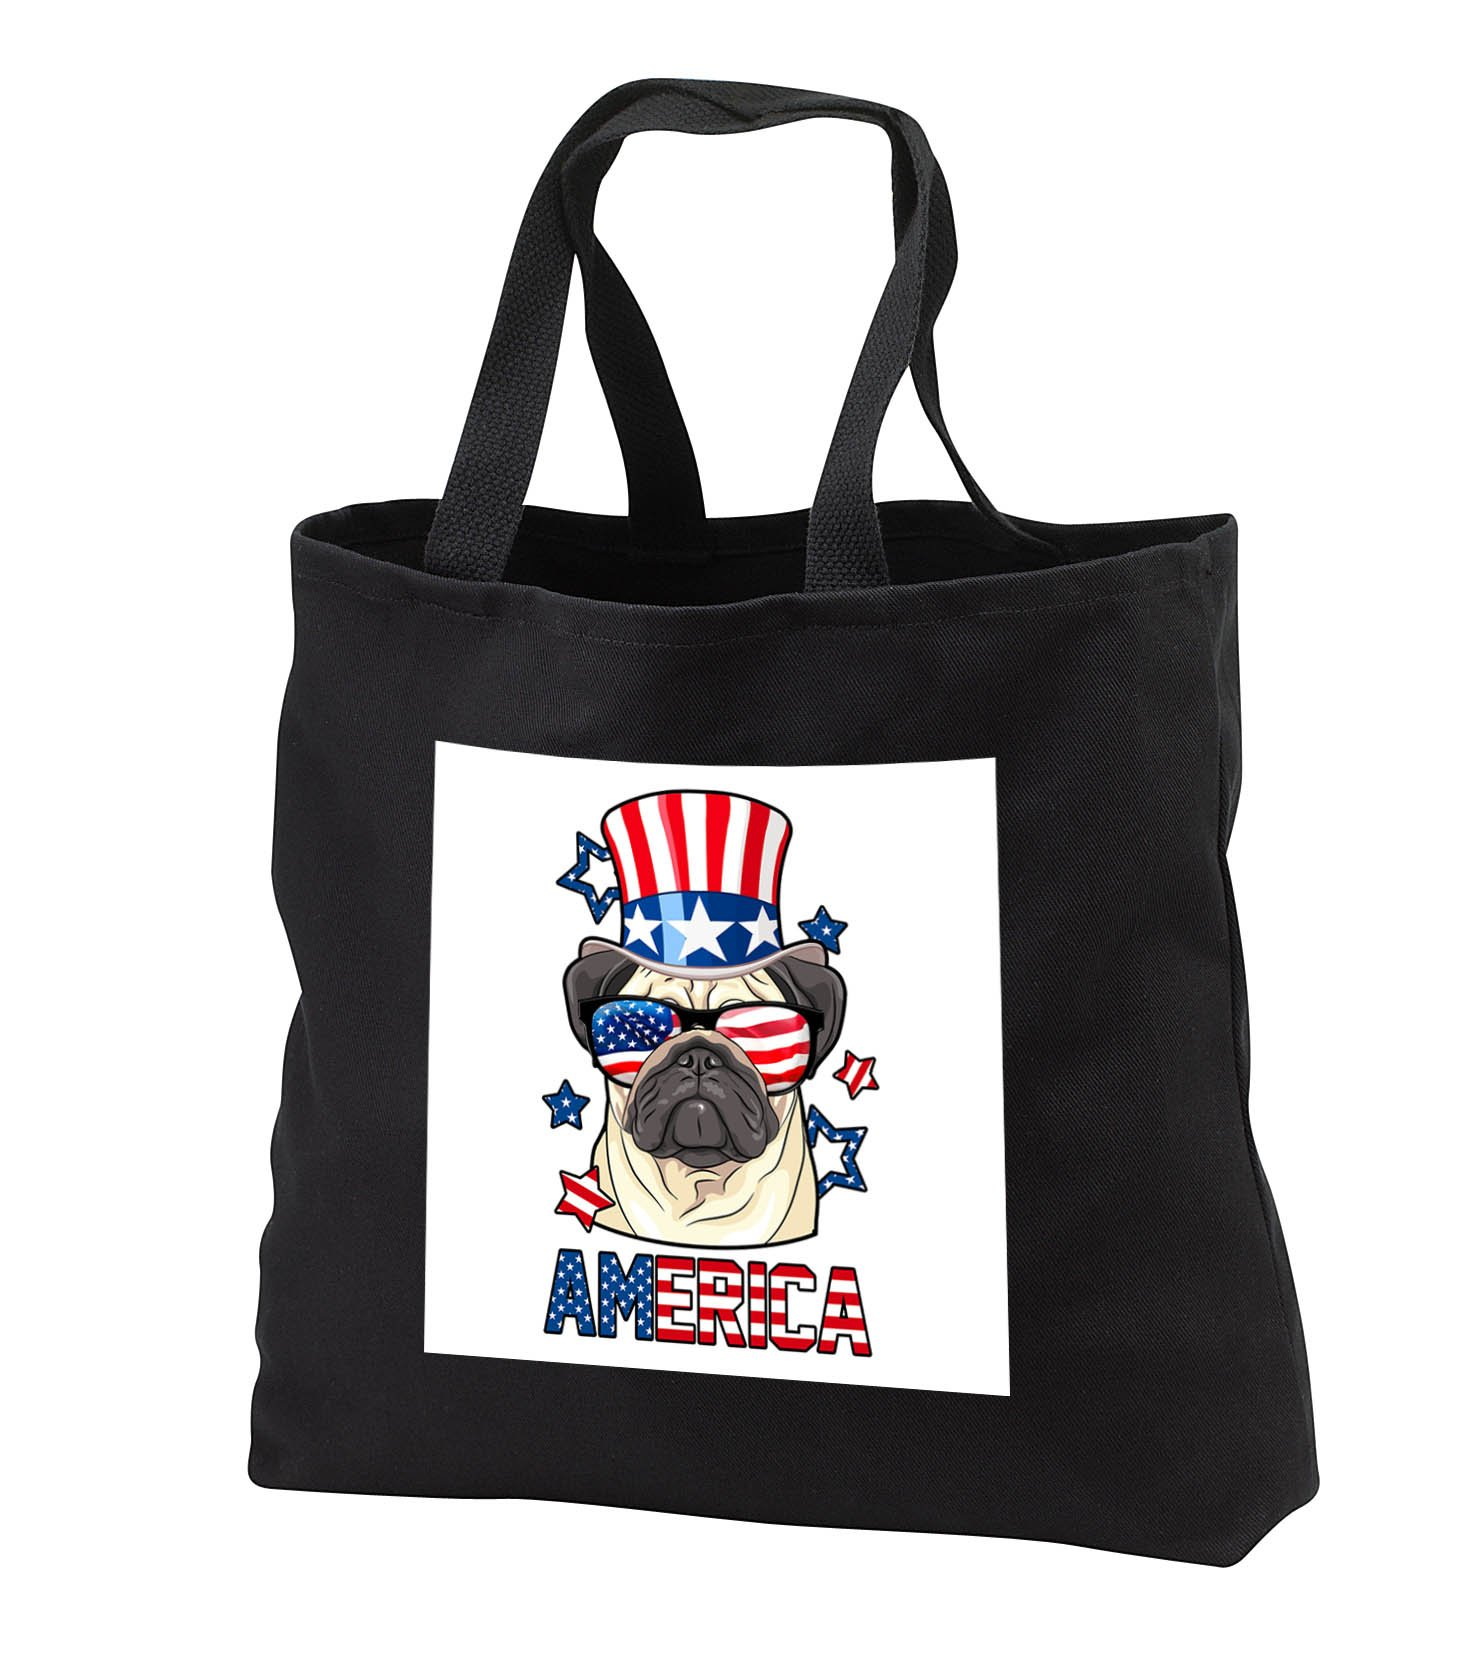 Patriotic American Dogs - Pug With American Flag Sunglasses and Tophat Dog America - Tote Bags - Black Tote Bag JUMBO 20w x 15h x 5d (tb_284221_3)